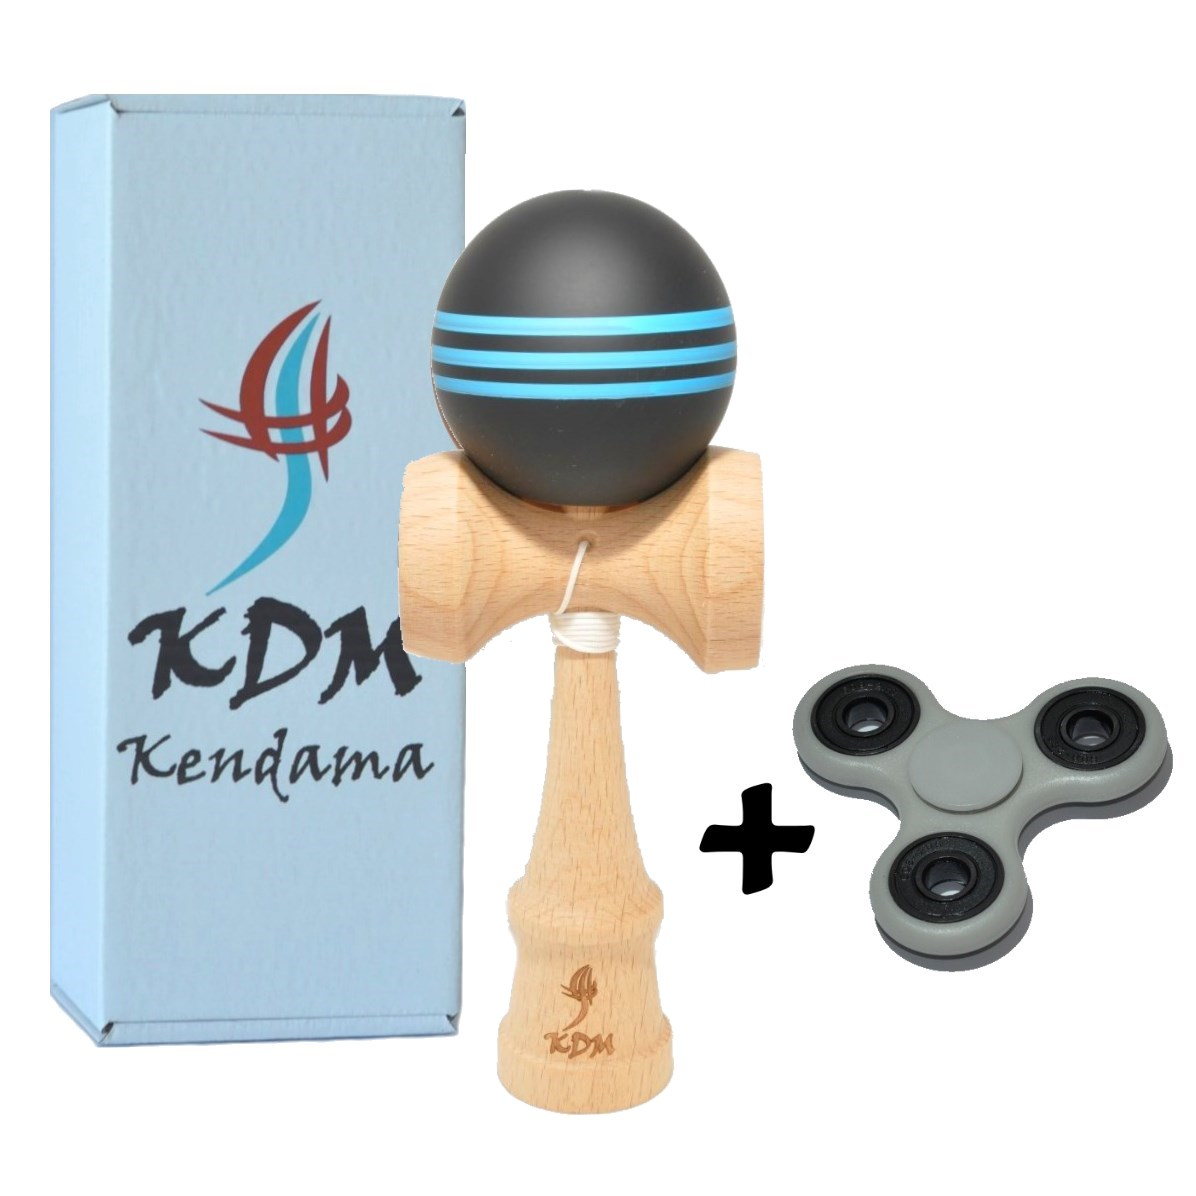 KDM-kendama-Spinner2